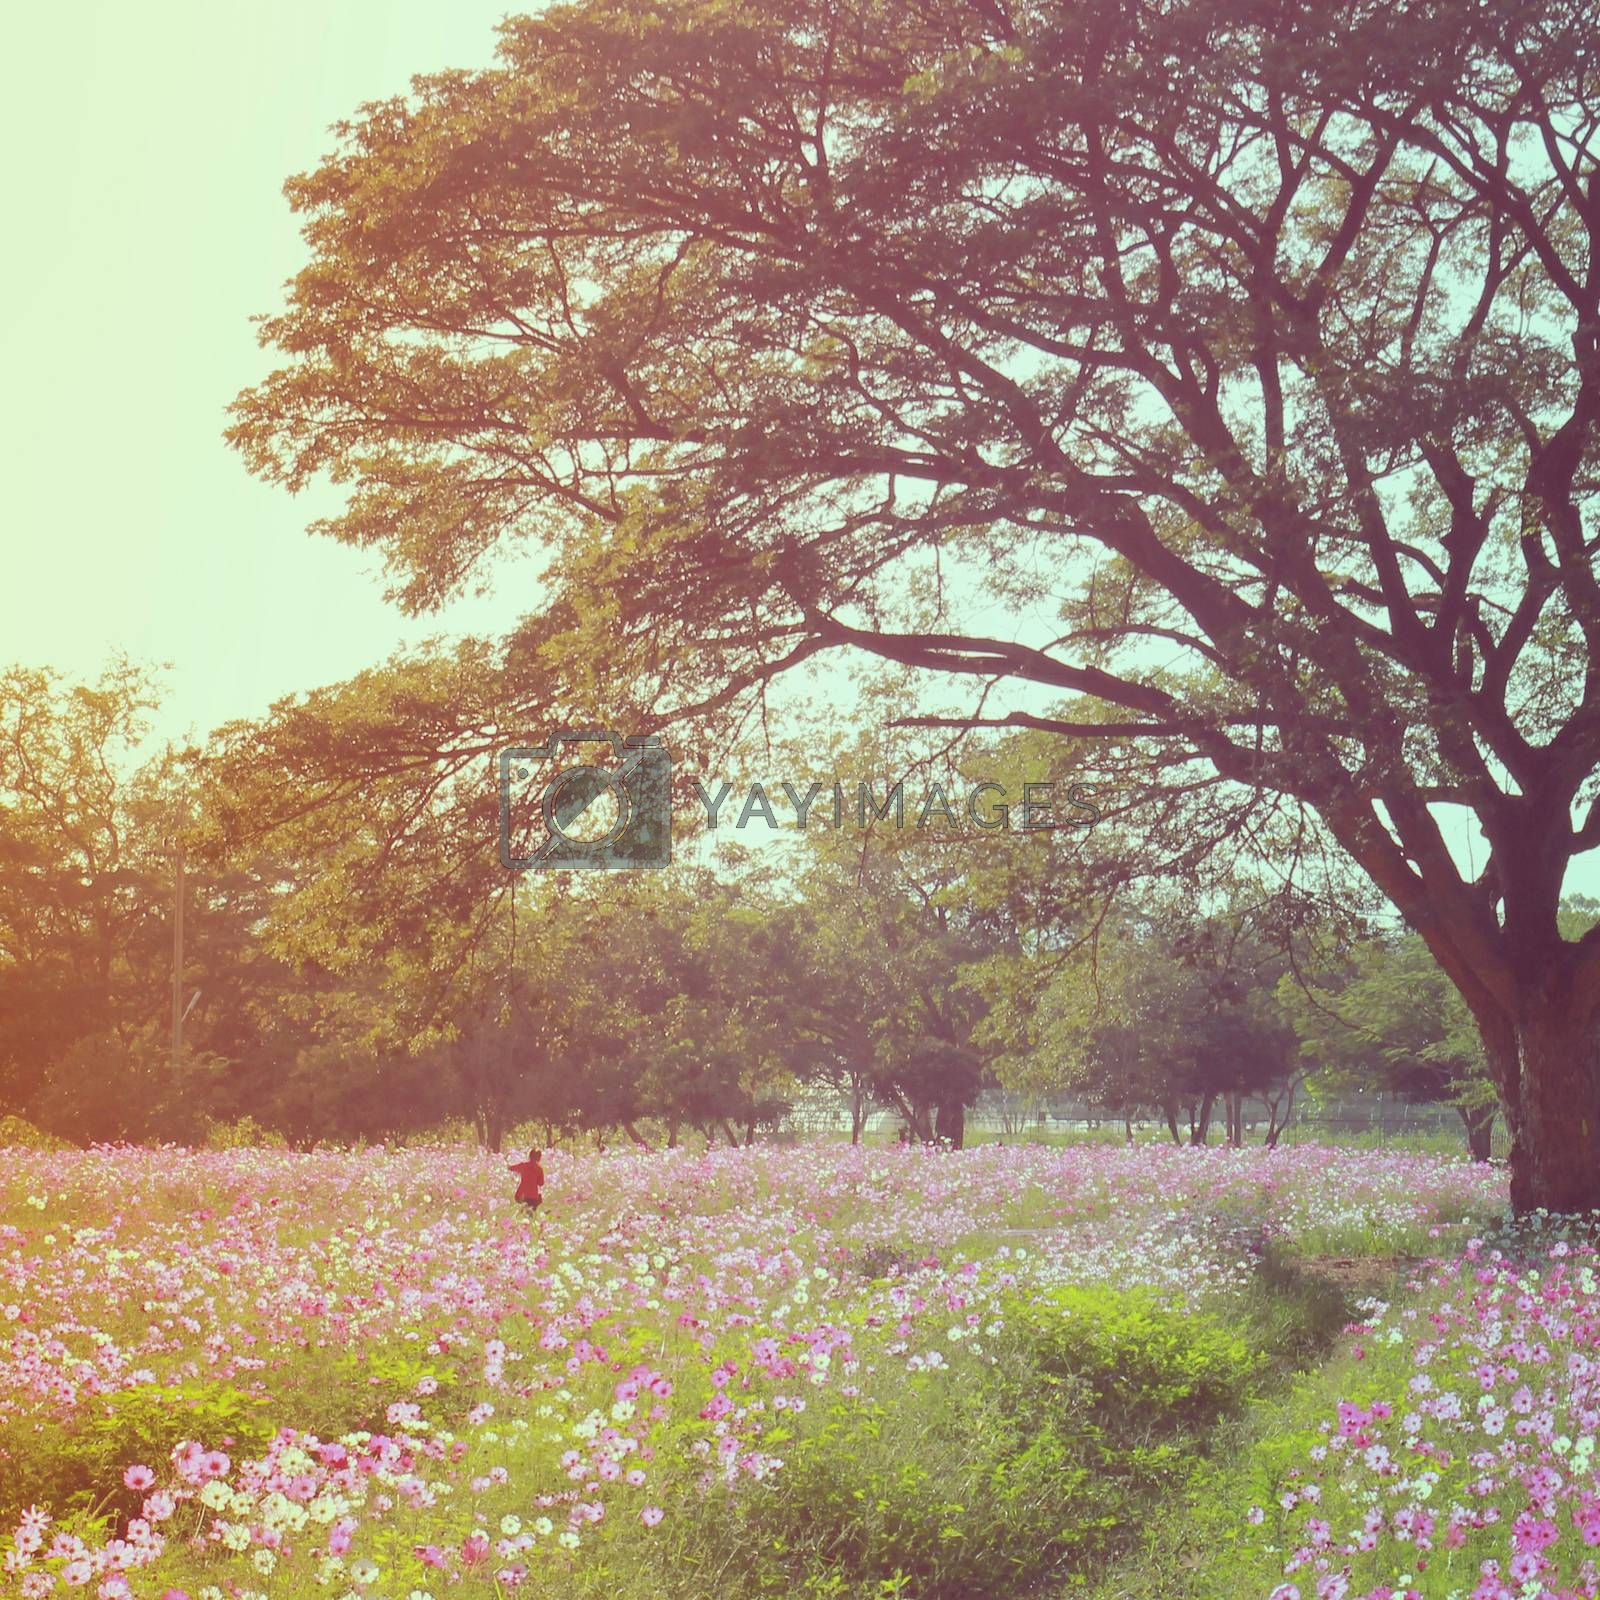 A woman walking in the flowered field with retro filter effect